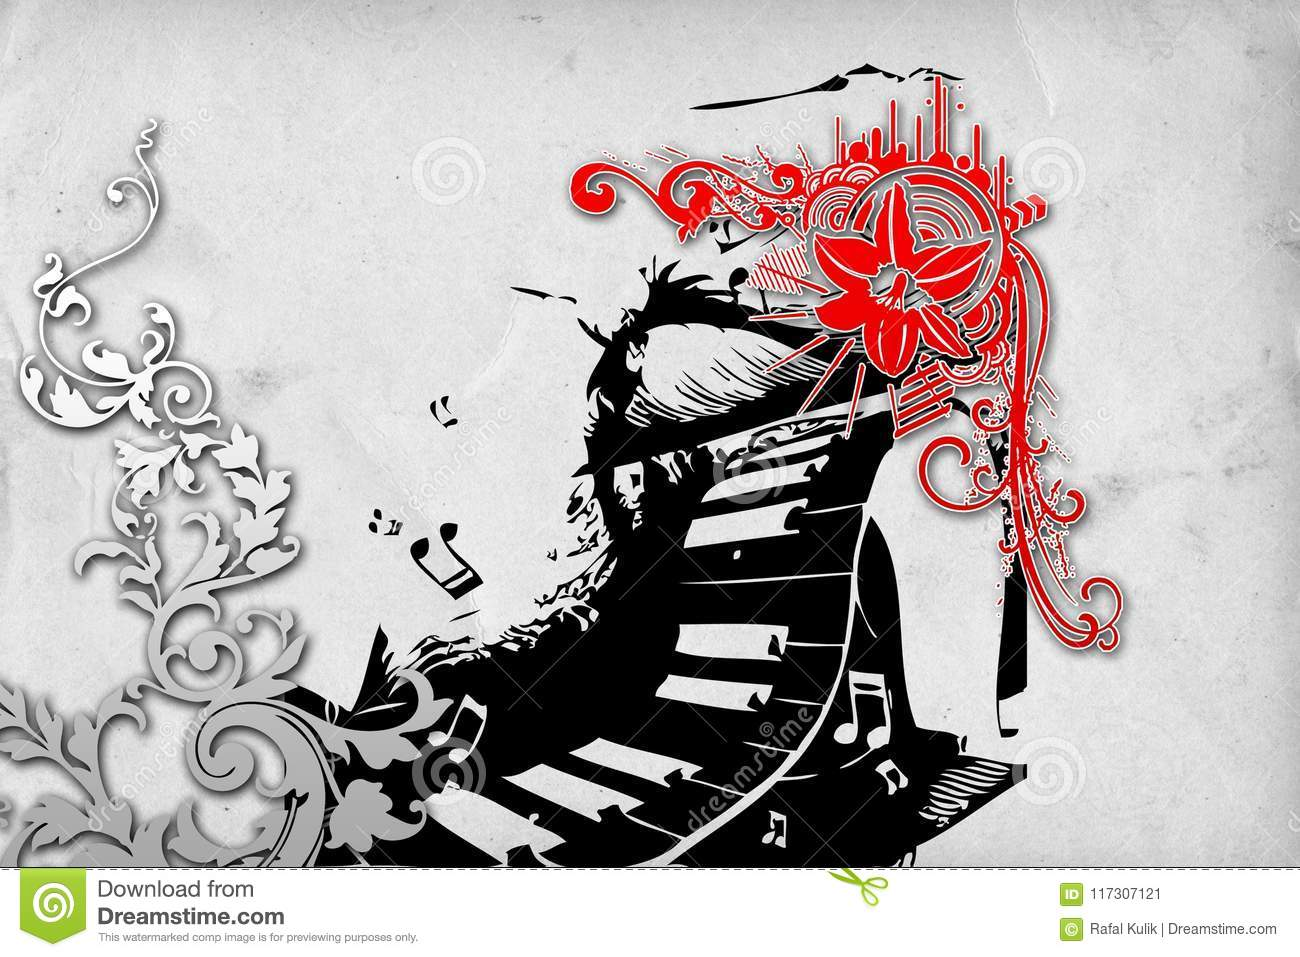 Music Abstract Color Design Funny Image Stock Illustration